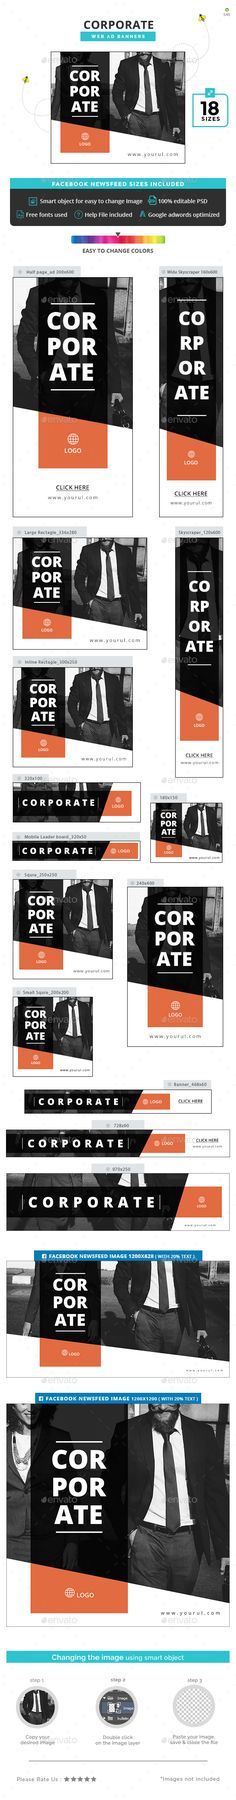 Corporate Web Banners Template PSD